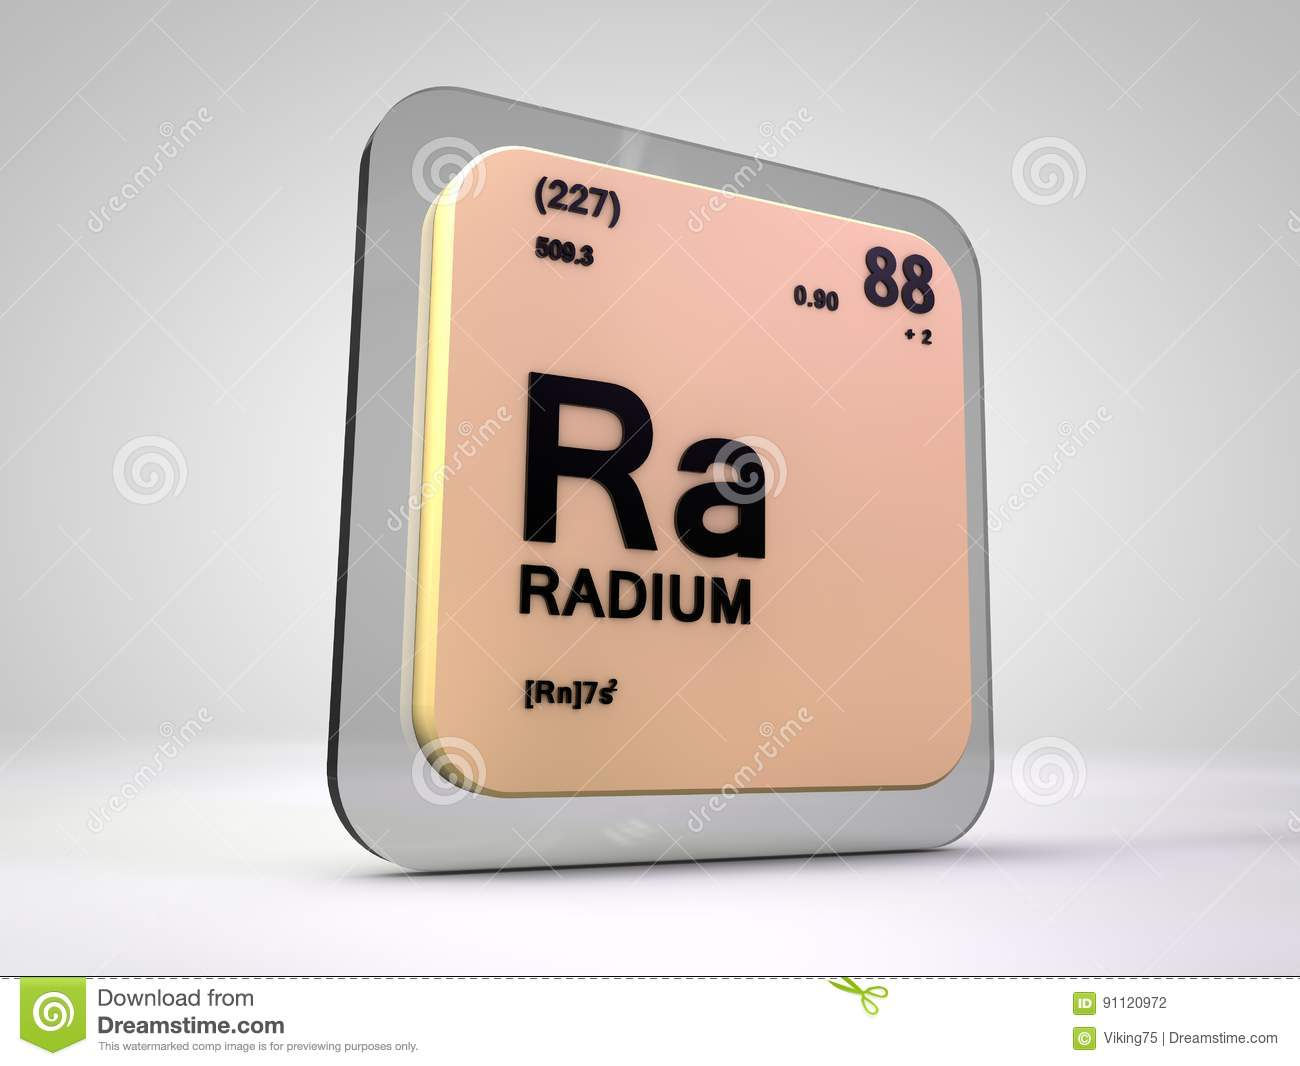 Radium ra chemical element periodic table stock illustration radium ra chemical element periodic table gamestrikefo Images